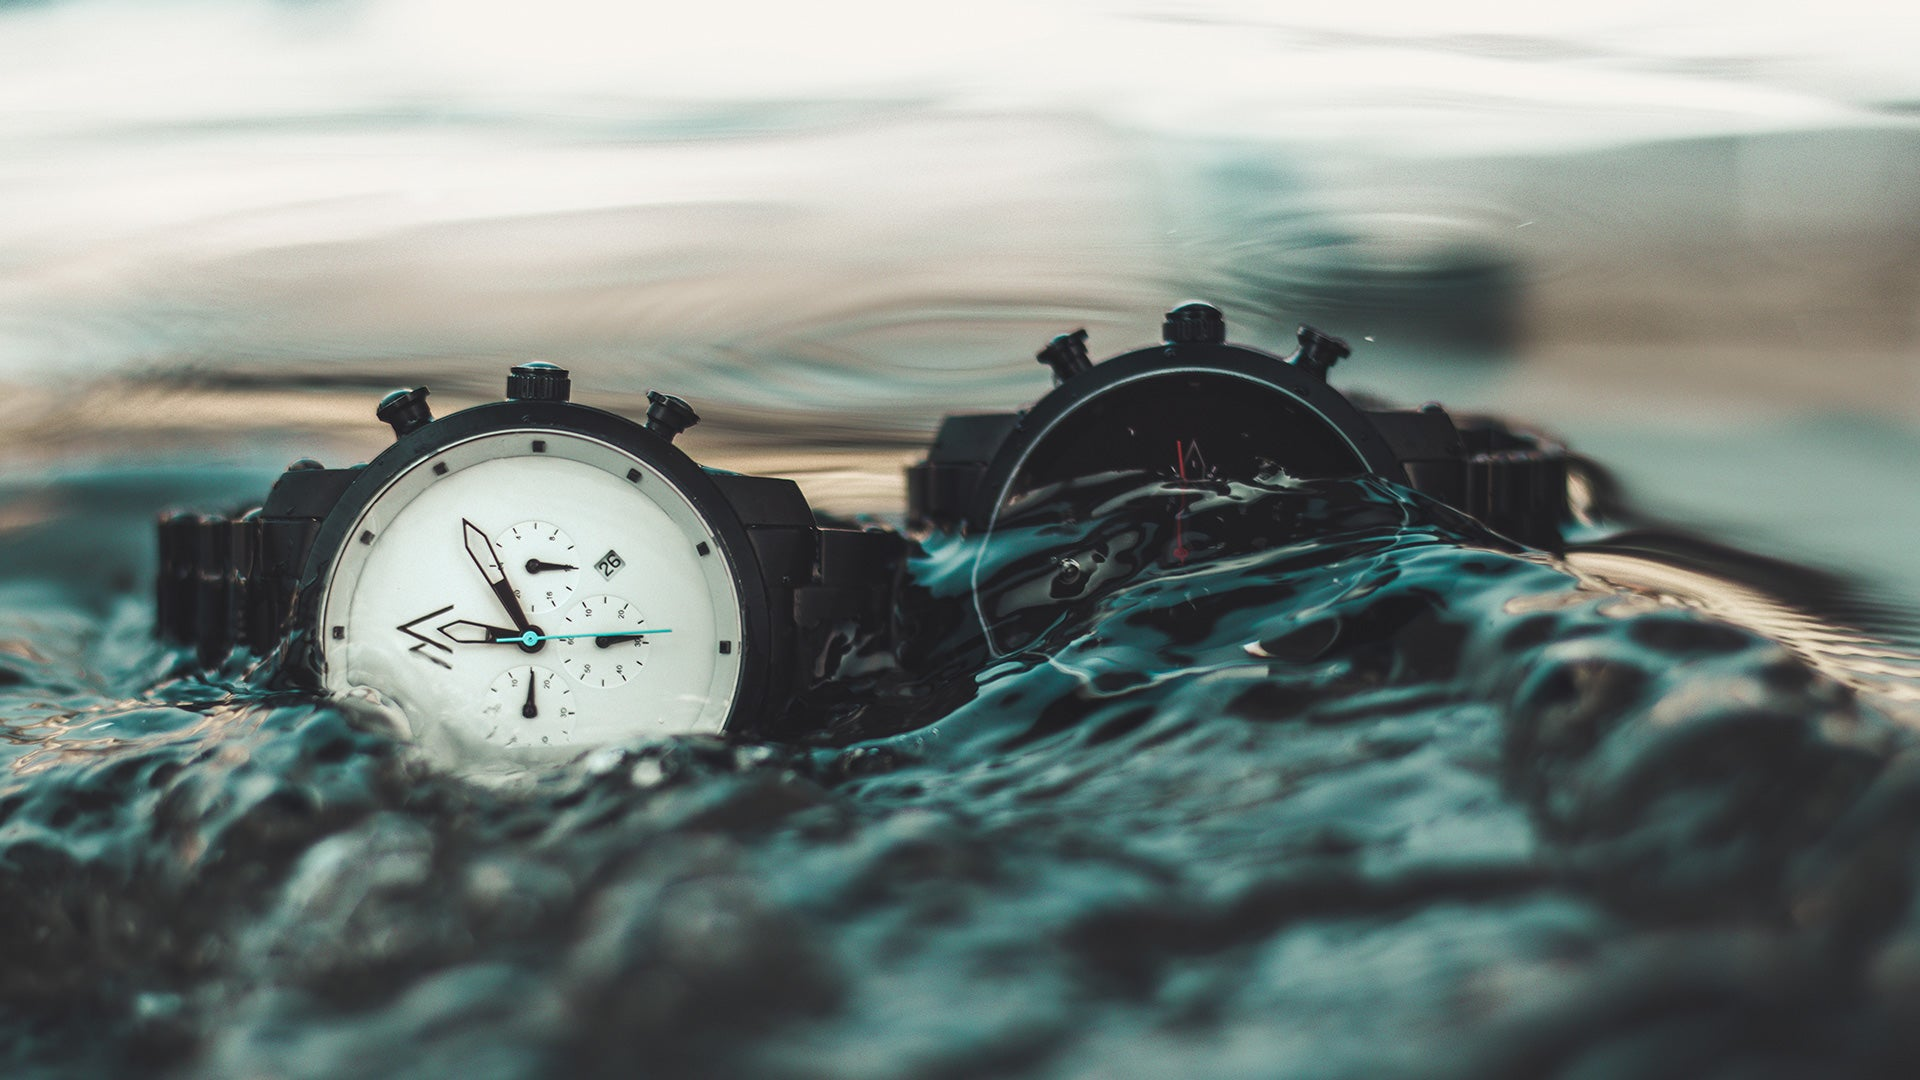 Pompeak watches chronograph collection water shot